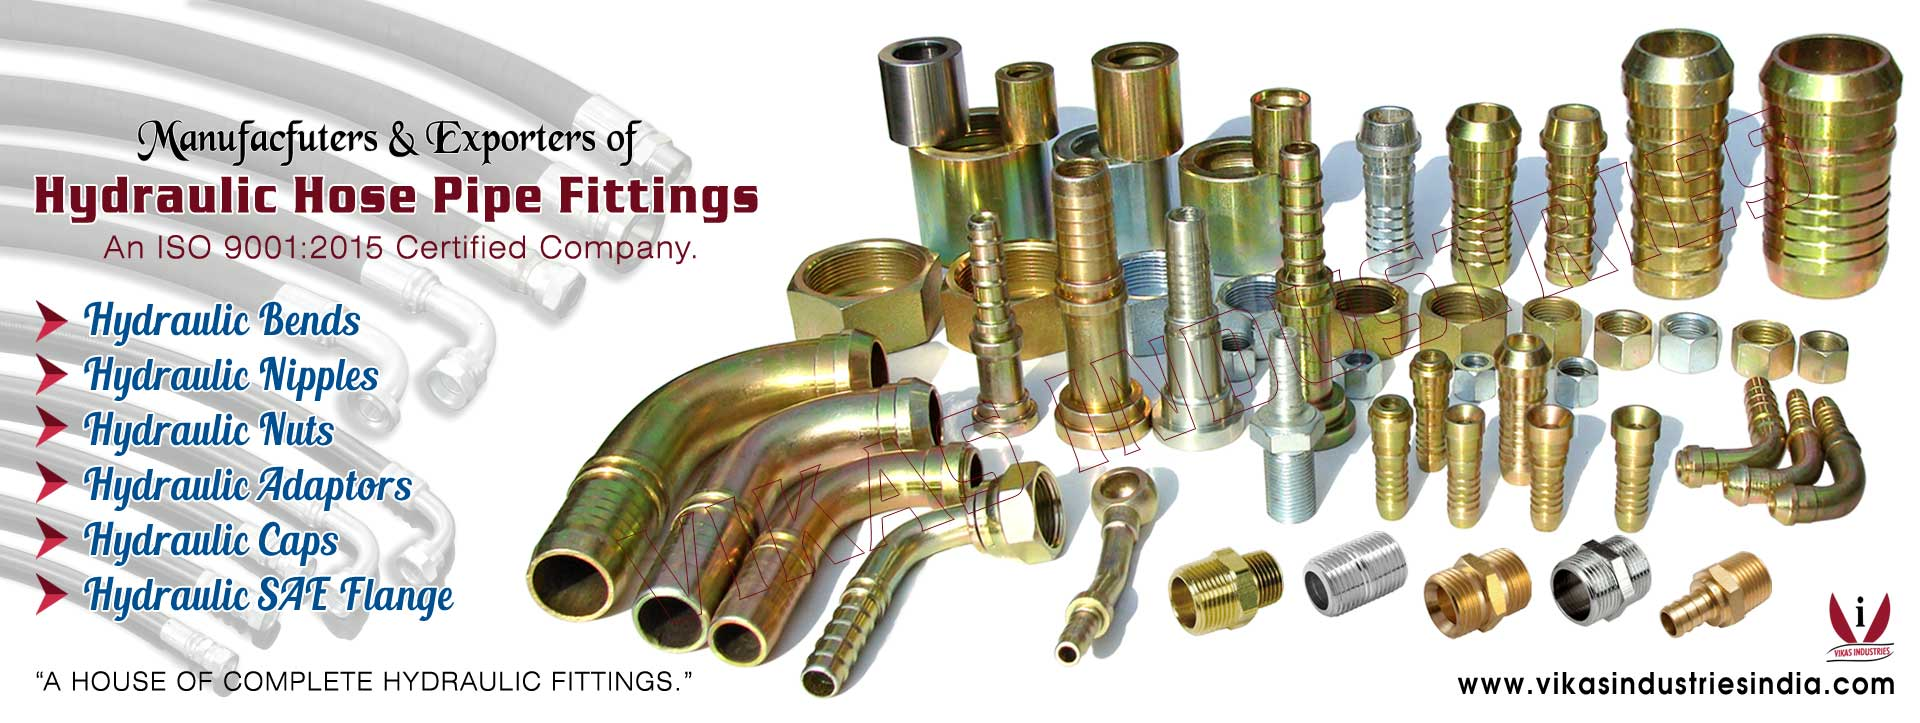 Steel Hydraulic Fittings manufacturers suppliers exporters distributors dealers from India punjab ludhiana